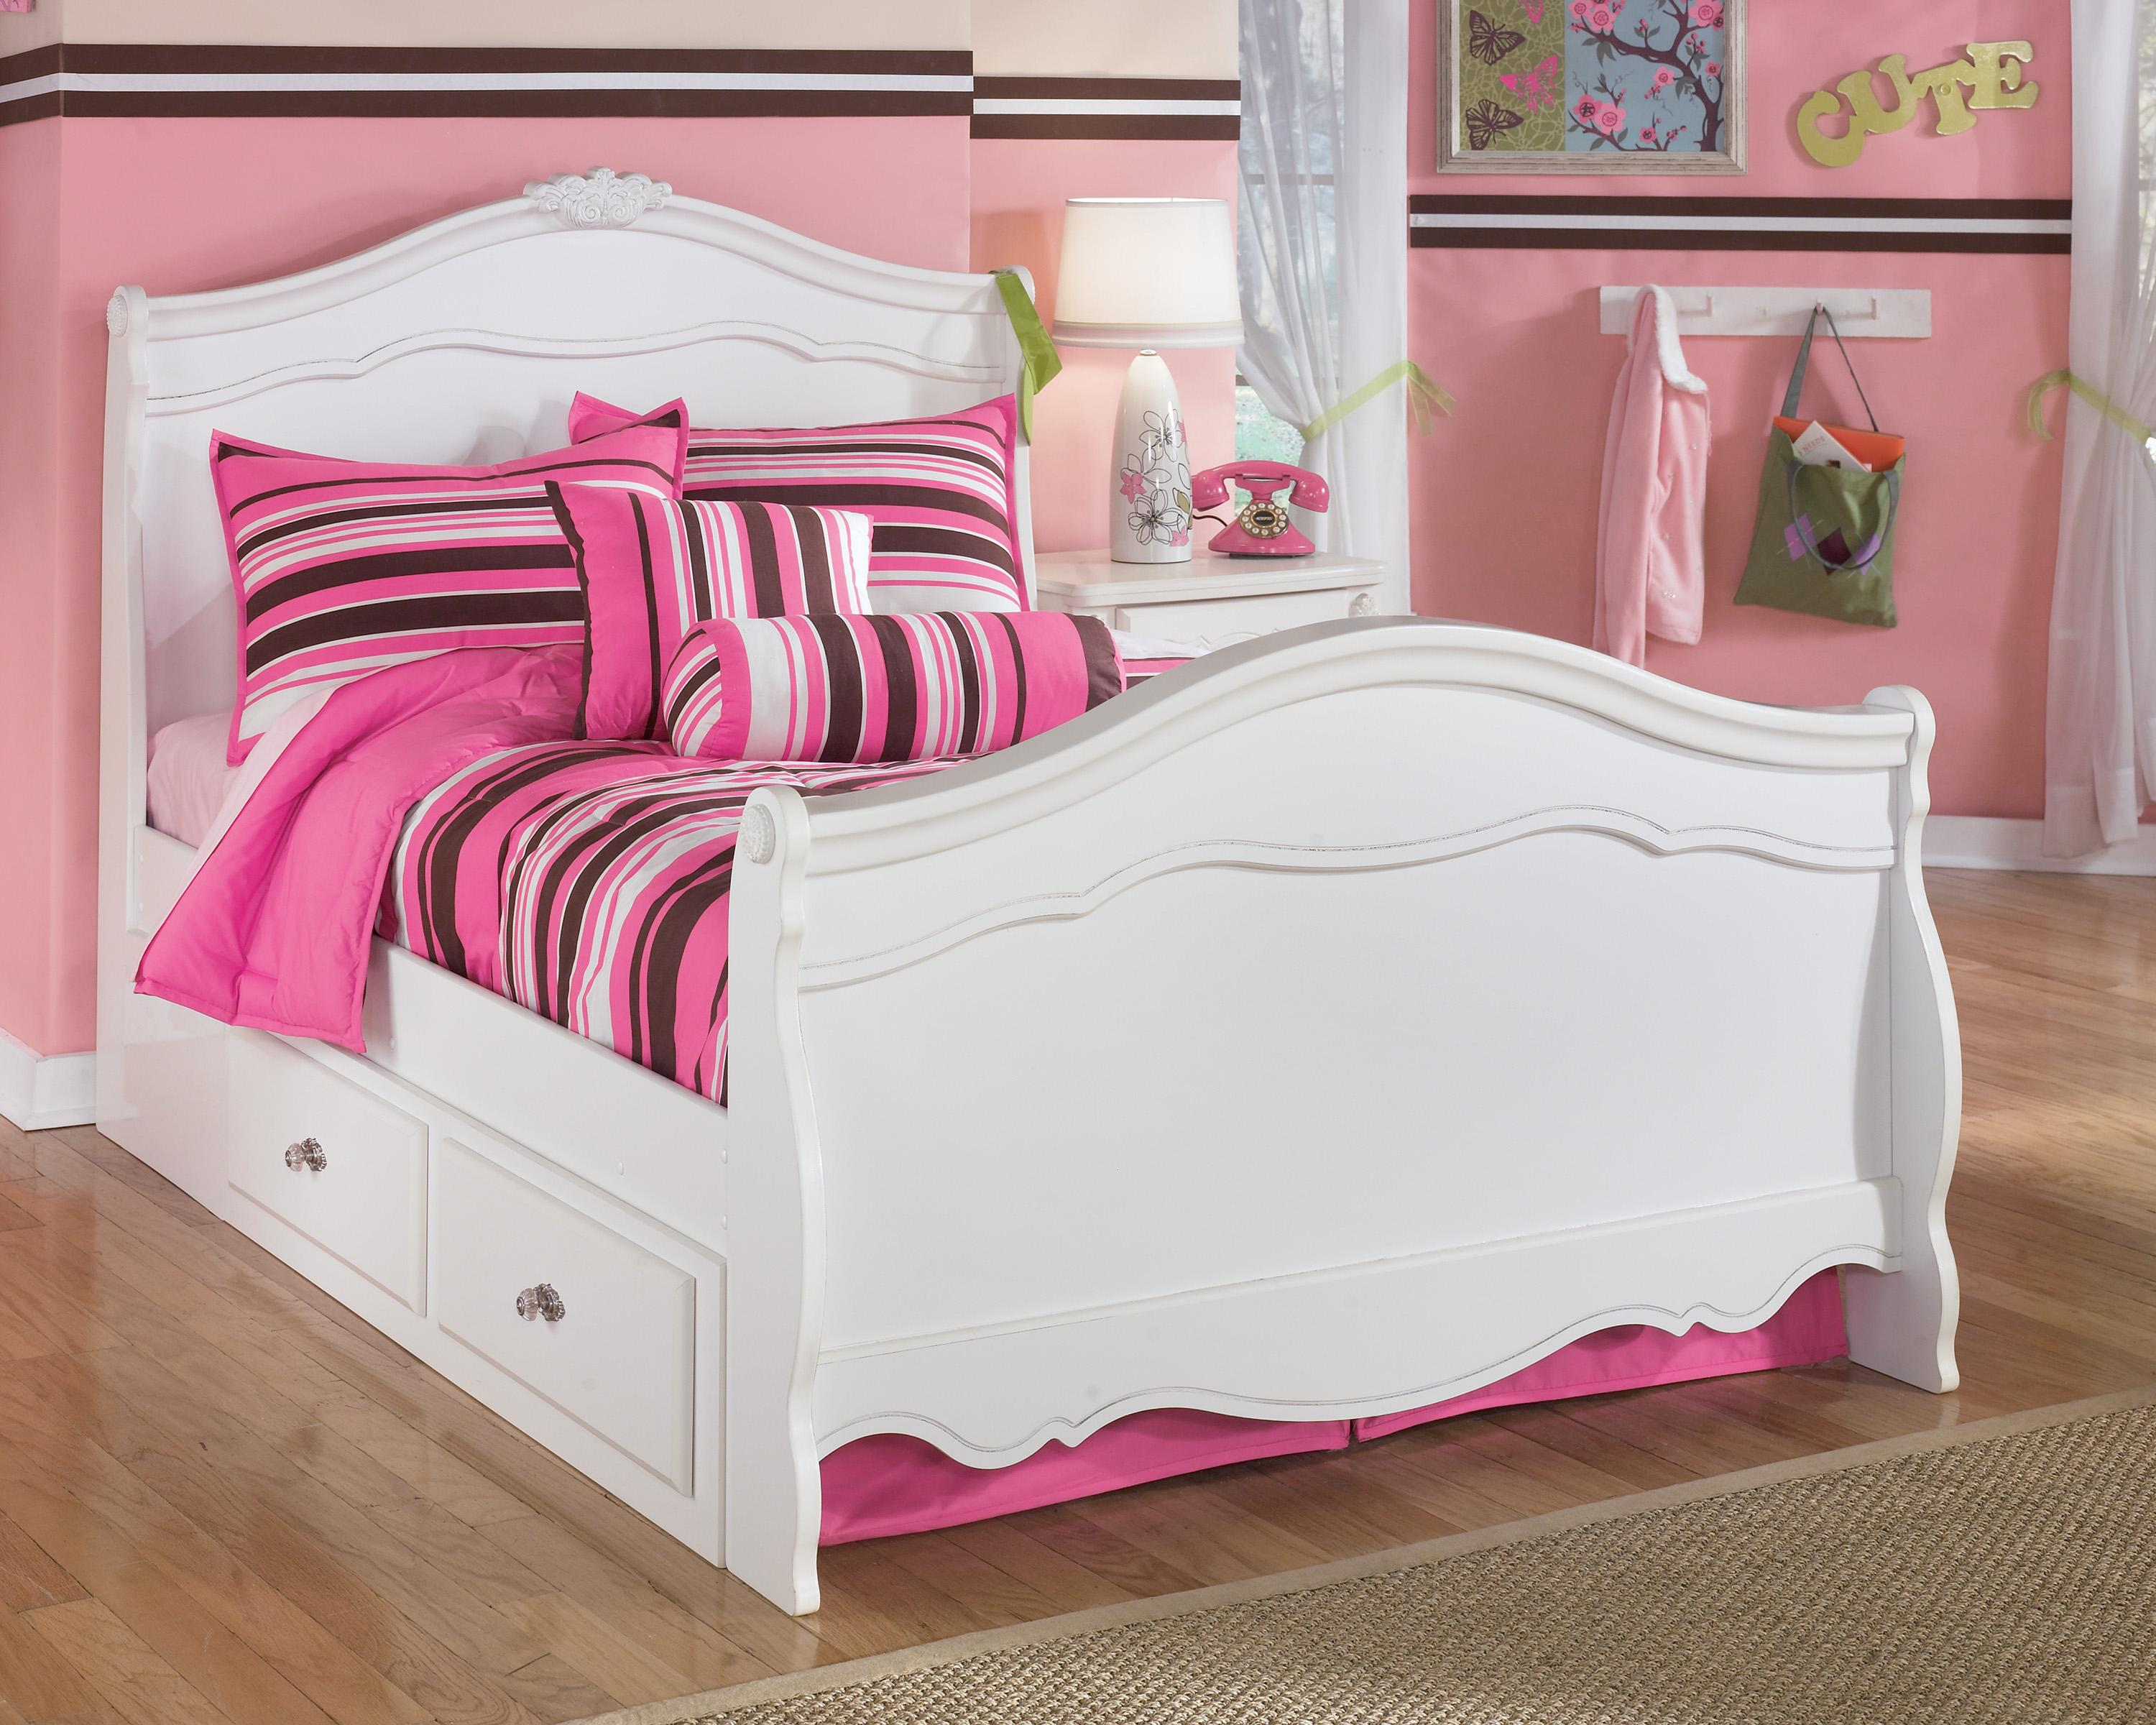 Signature Design by Ashley Exquisite Full Sleigh Bed with Under Bed Storage - Item Number: B188-87N+84N+88N+60